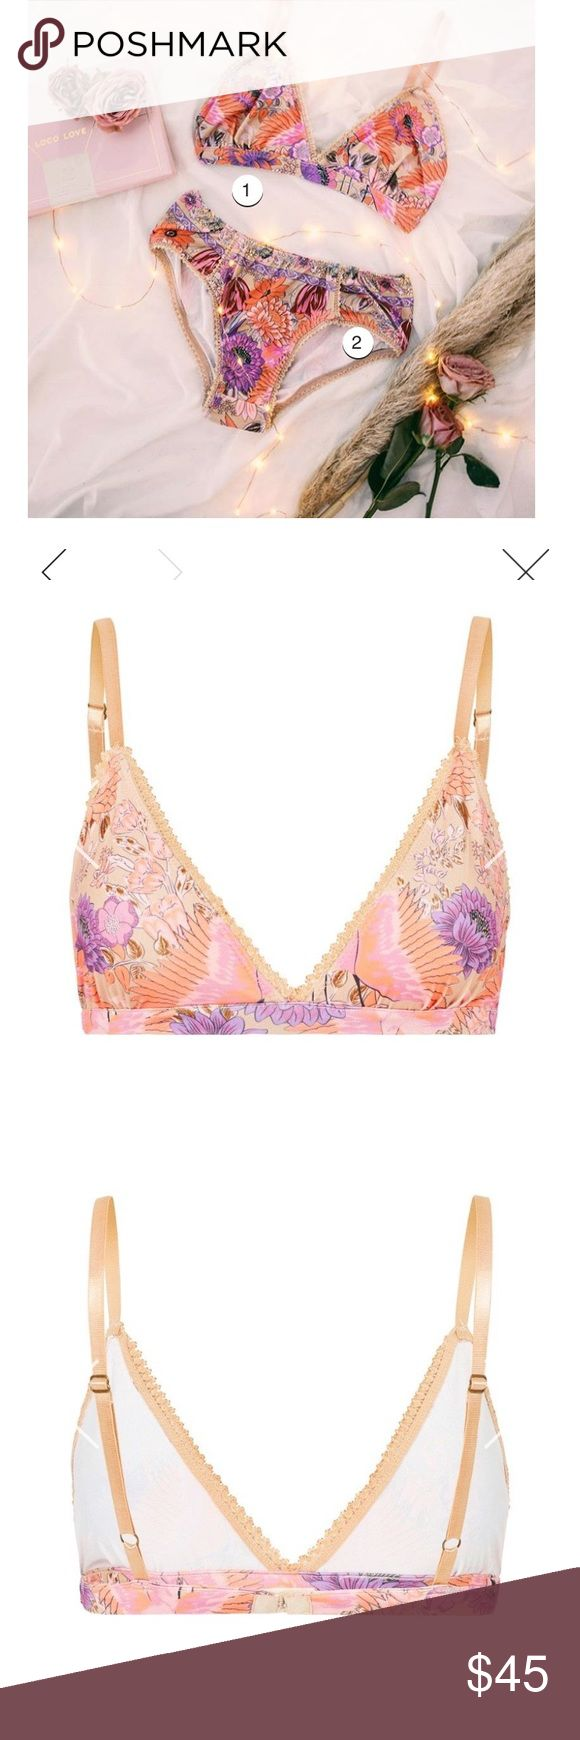 Spell & the Gypsy Collective Bralette/Panty Set Comfier than ever, the Siren Song Soft Tri Bralette is more of a traditional bra style with hook-and-eye closures at the back and adjustable straps, but better yet it is completely underwire free! inescapably summery with a blooming flamingo colored floral print against a cream colored polyester spandex - the Siren Song Bloomers are conveniently versatile, wear these beautiful briefs as swimmers for a quick dip or to bed as intimates on a balmy…